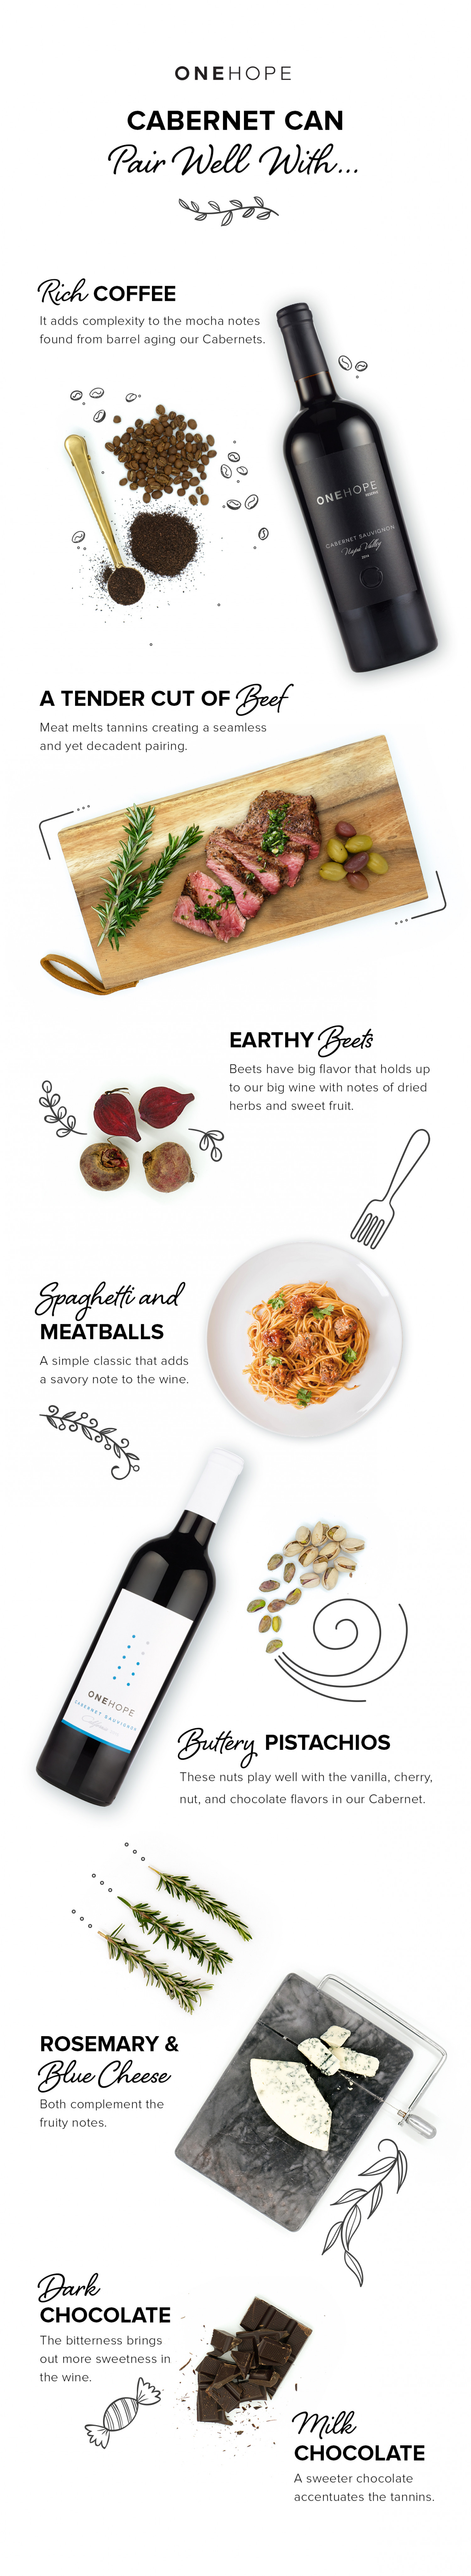 What To Pair With Cabernet Sauvignon Wine Infographic